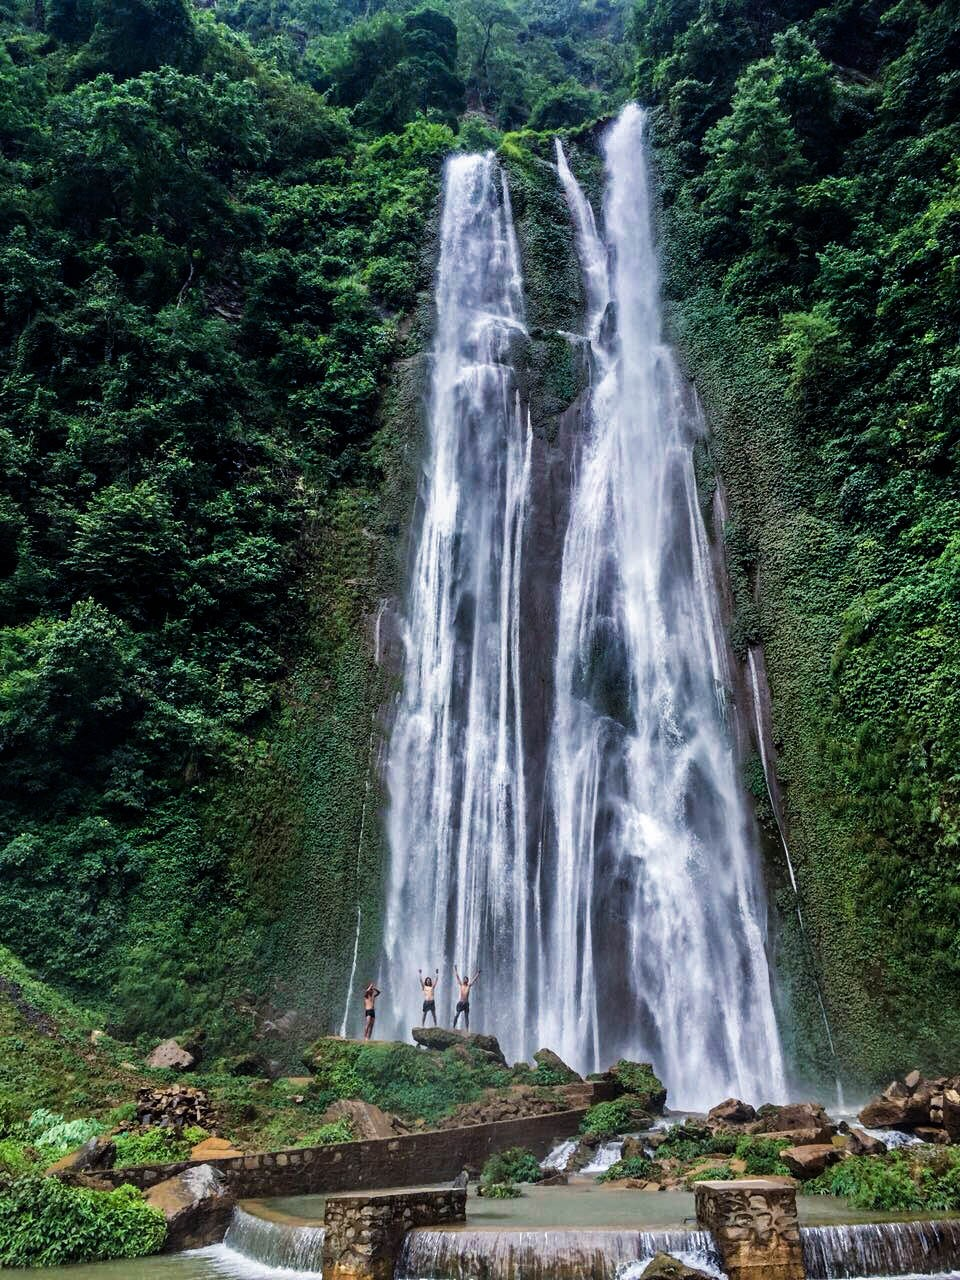 Canyoning in Nepal: Happy Time with the Water Falls - Nepal